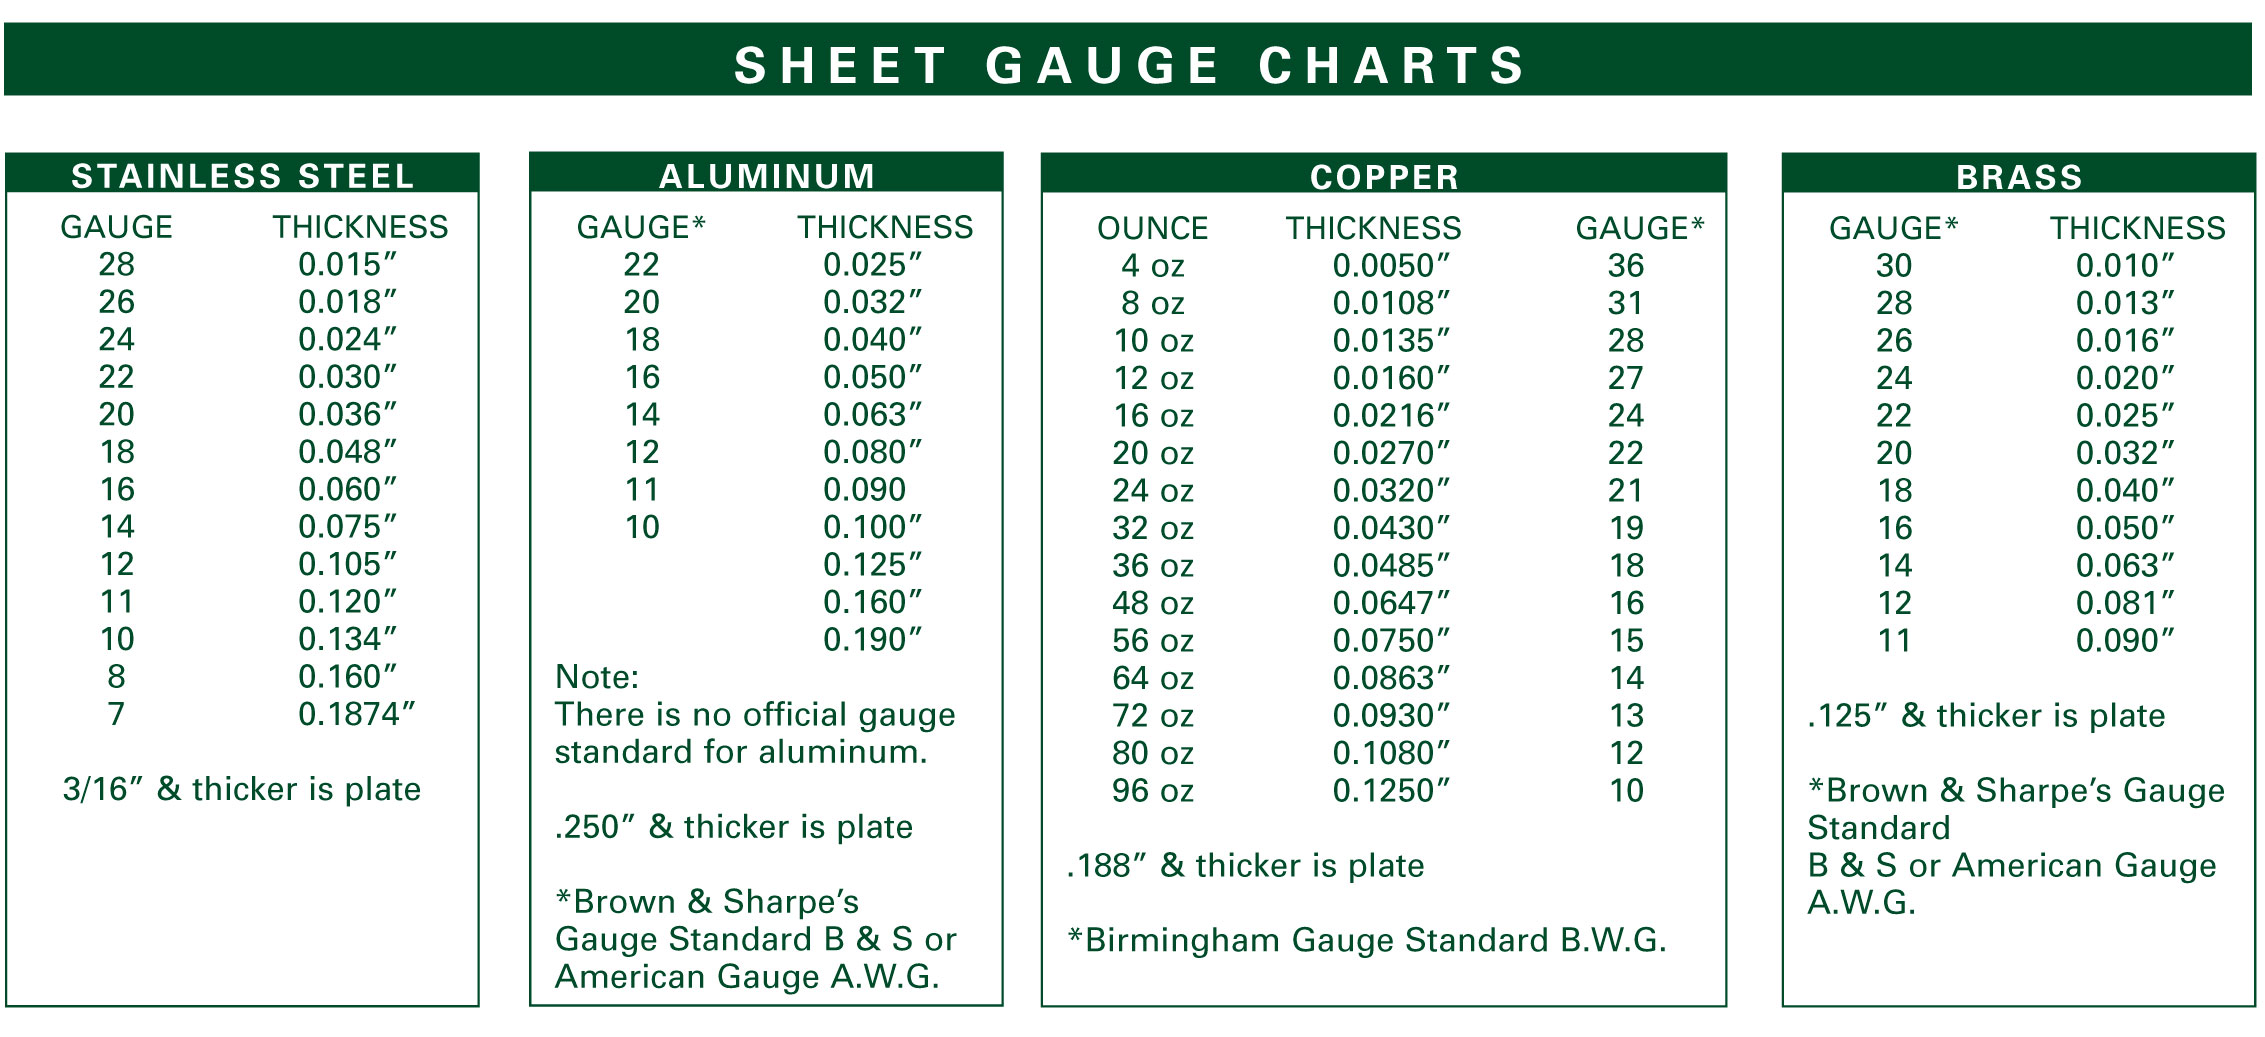 Gauge conversion chart jewel clark sheet gauge chart for determining metal gauge from oz designations nvjuhfo Images